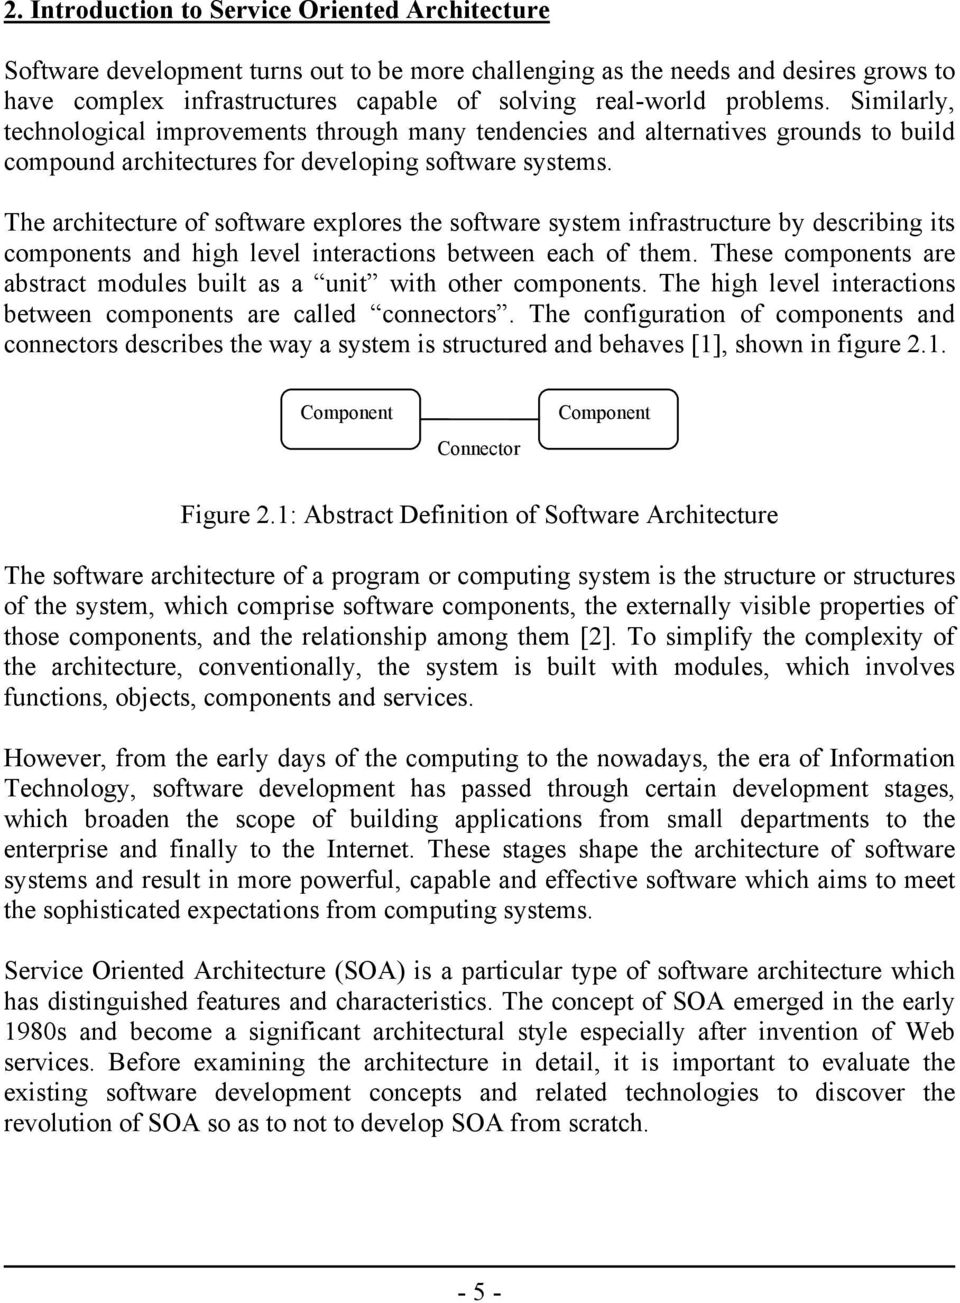 The architecture of software explores the software system infrastructure by describing its components and high level interactions between each of them.